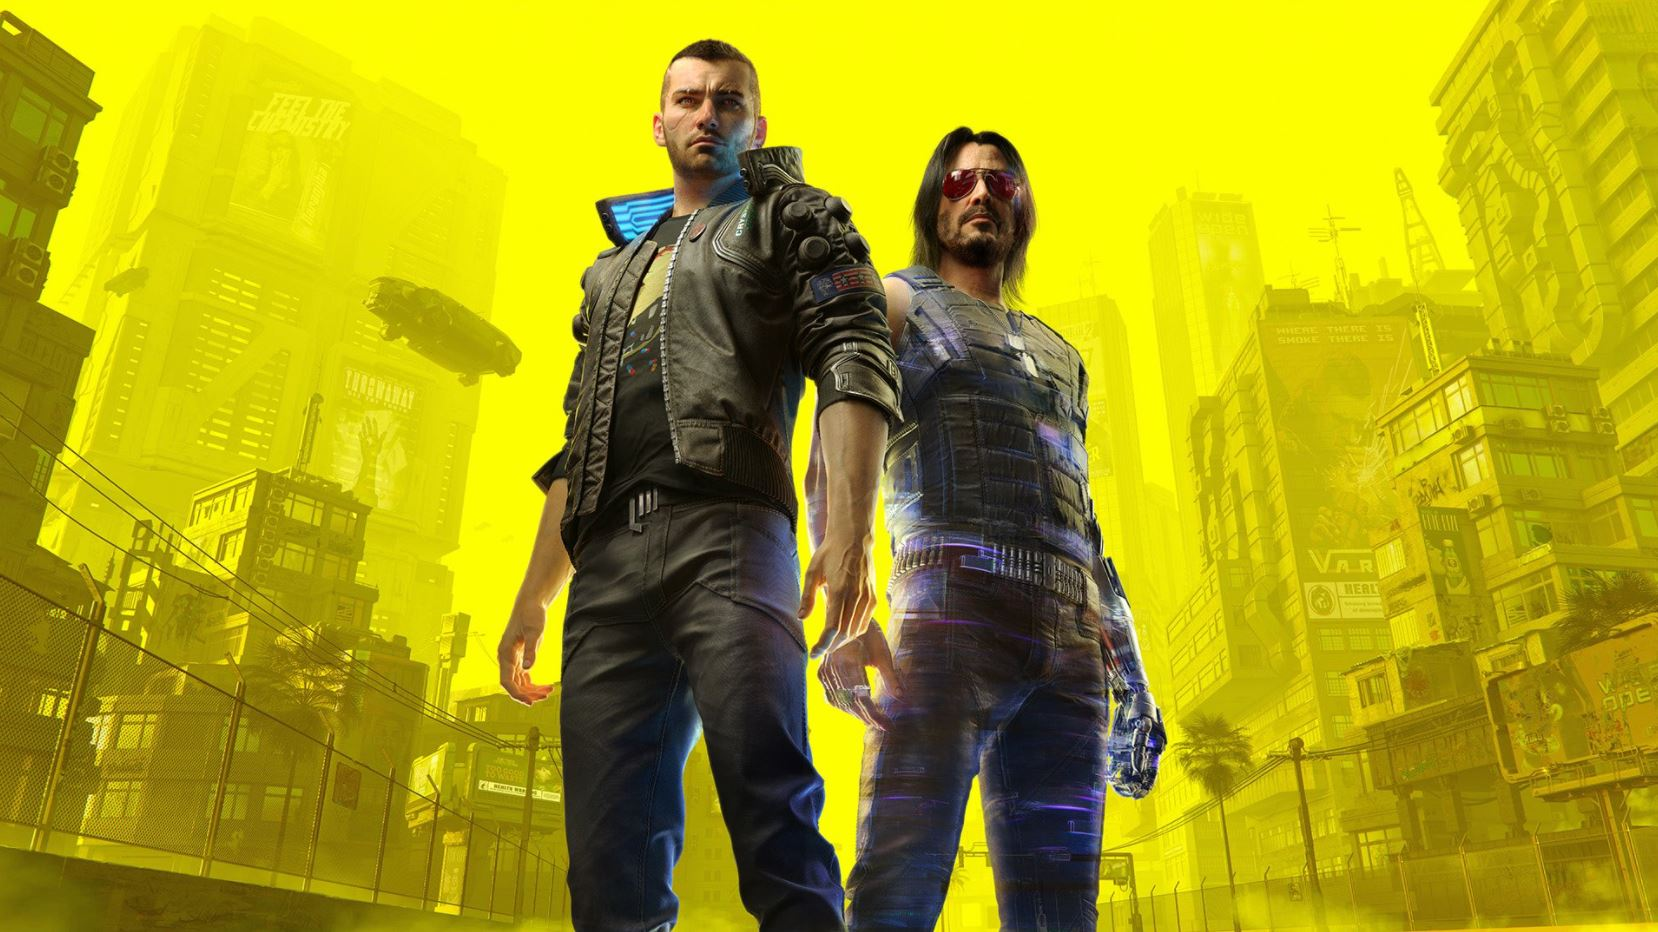 Keanu Reeves' Johnny Silverhand Will Be Playable in Cyberpunk 2077